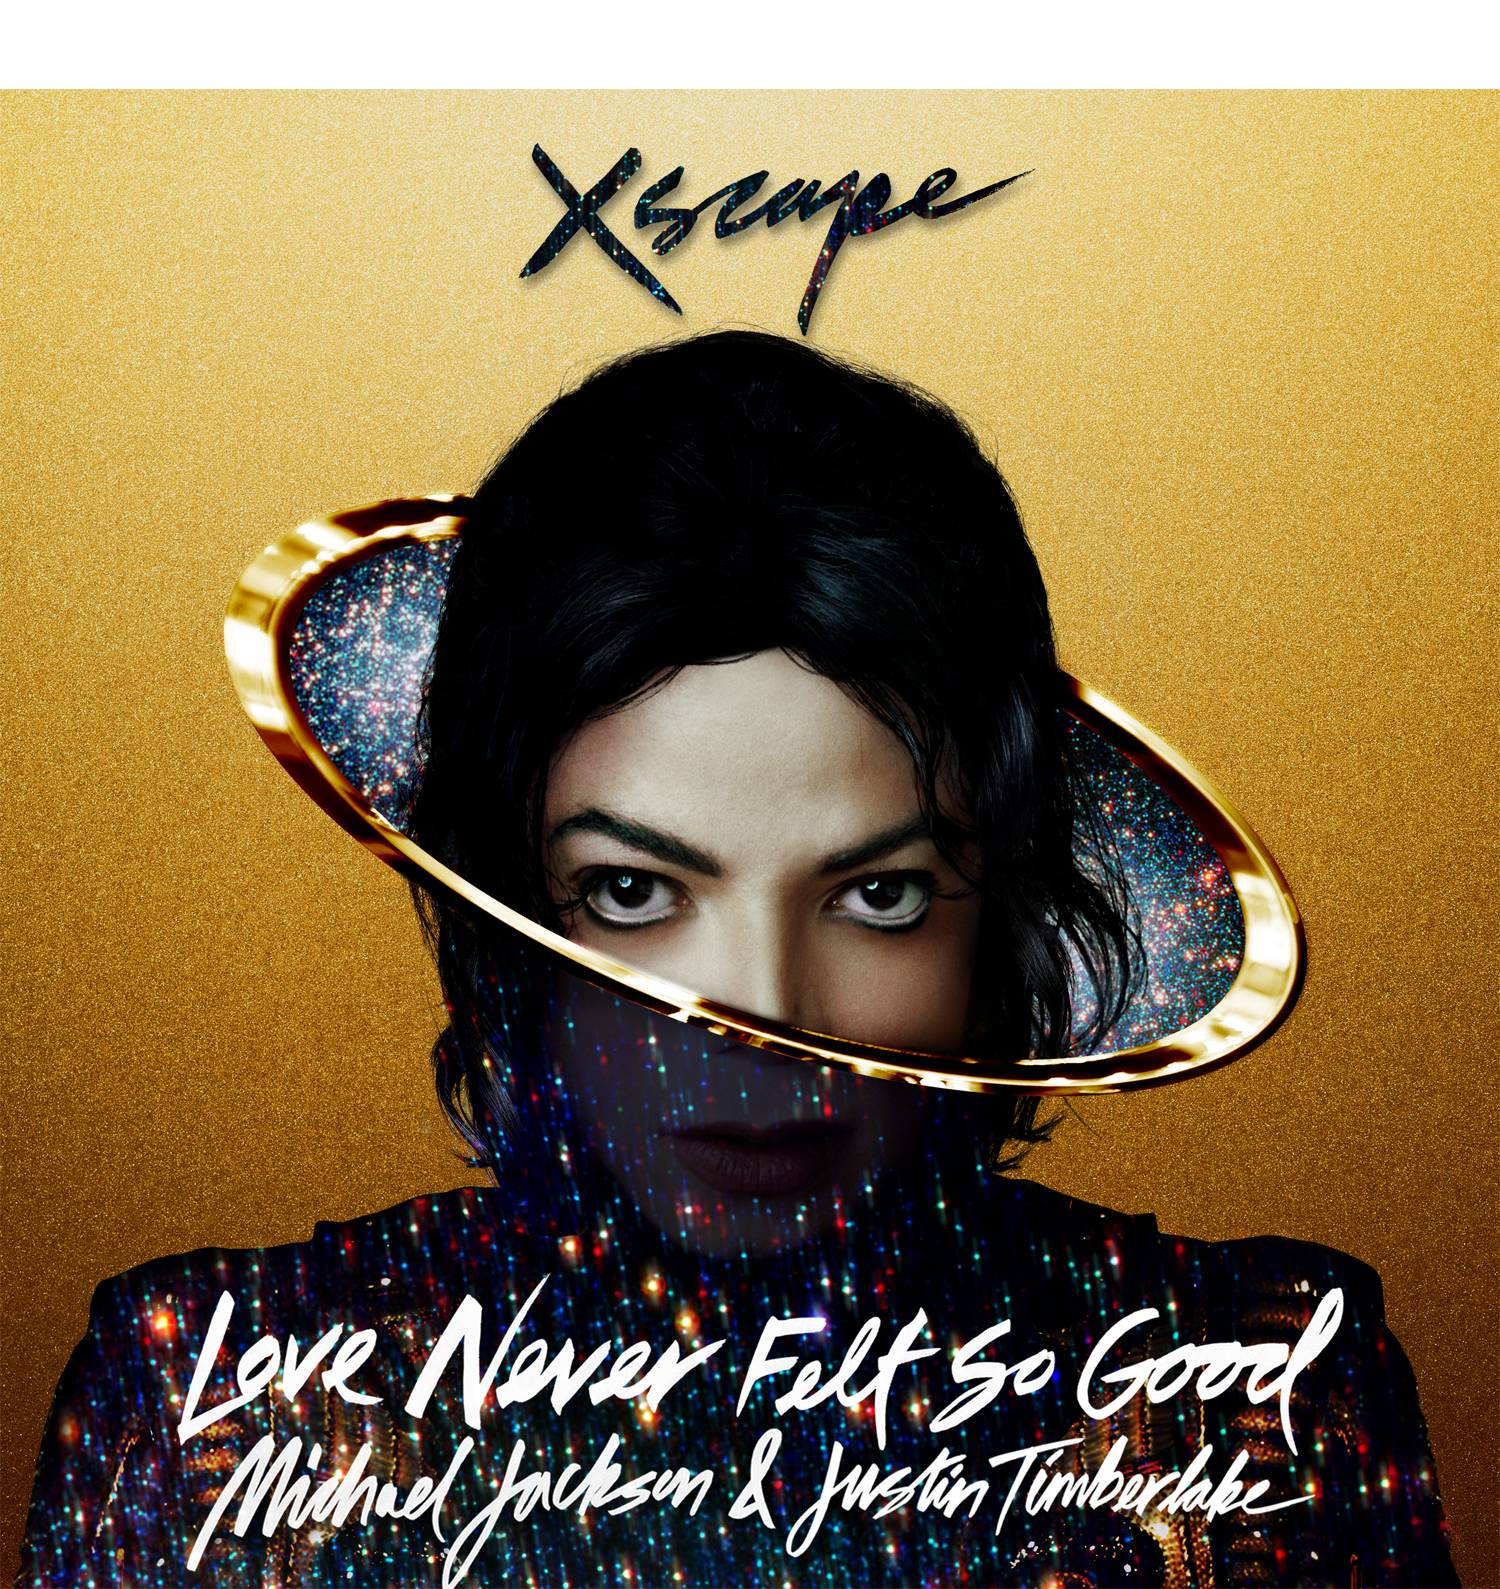 """Xscape,"" which includes songs Michael Jackson recorded in the 1980s and 1990s, is out May 13."